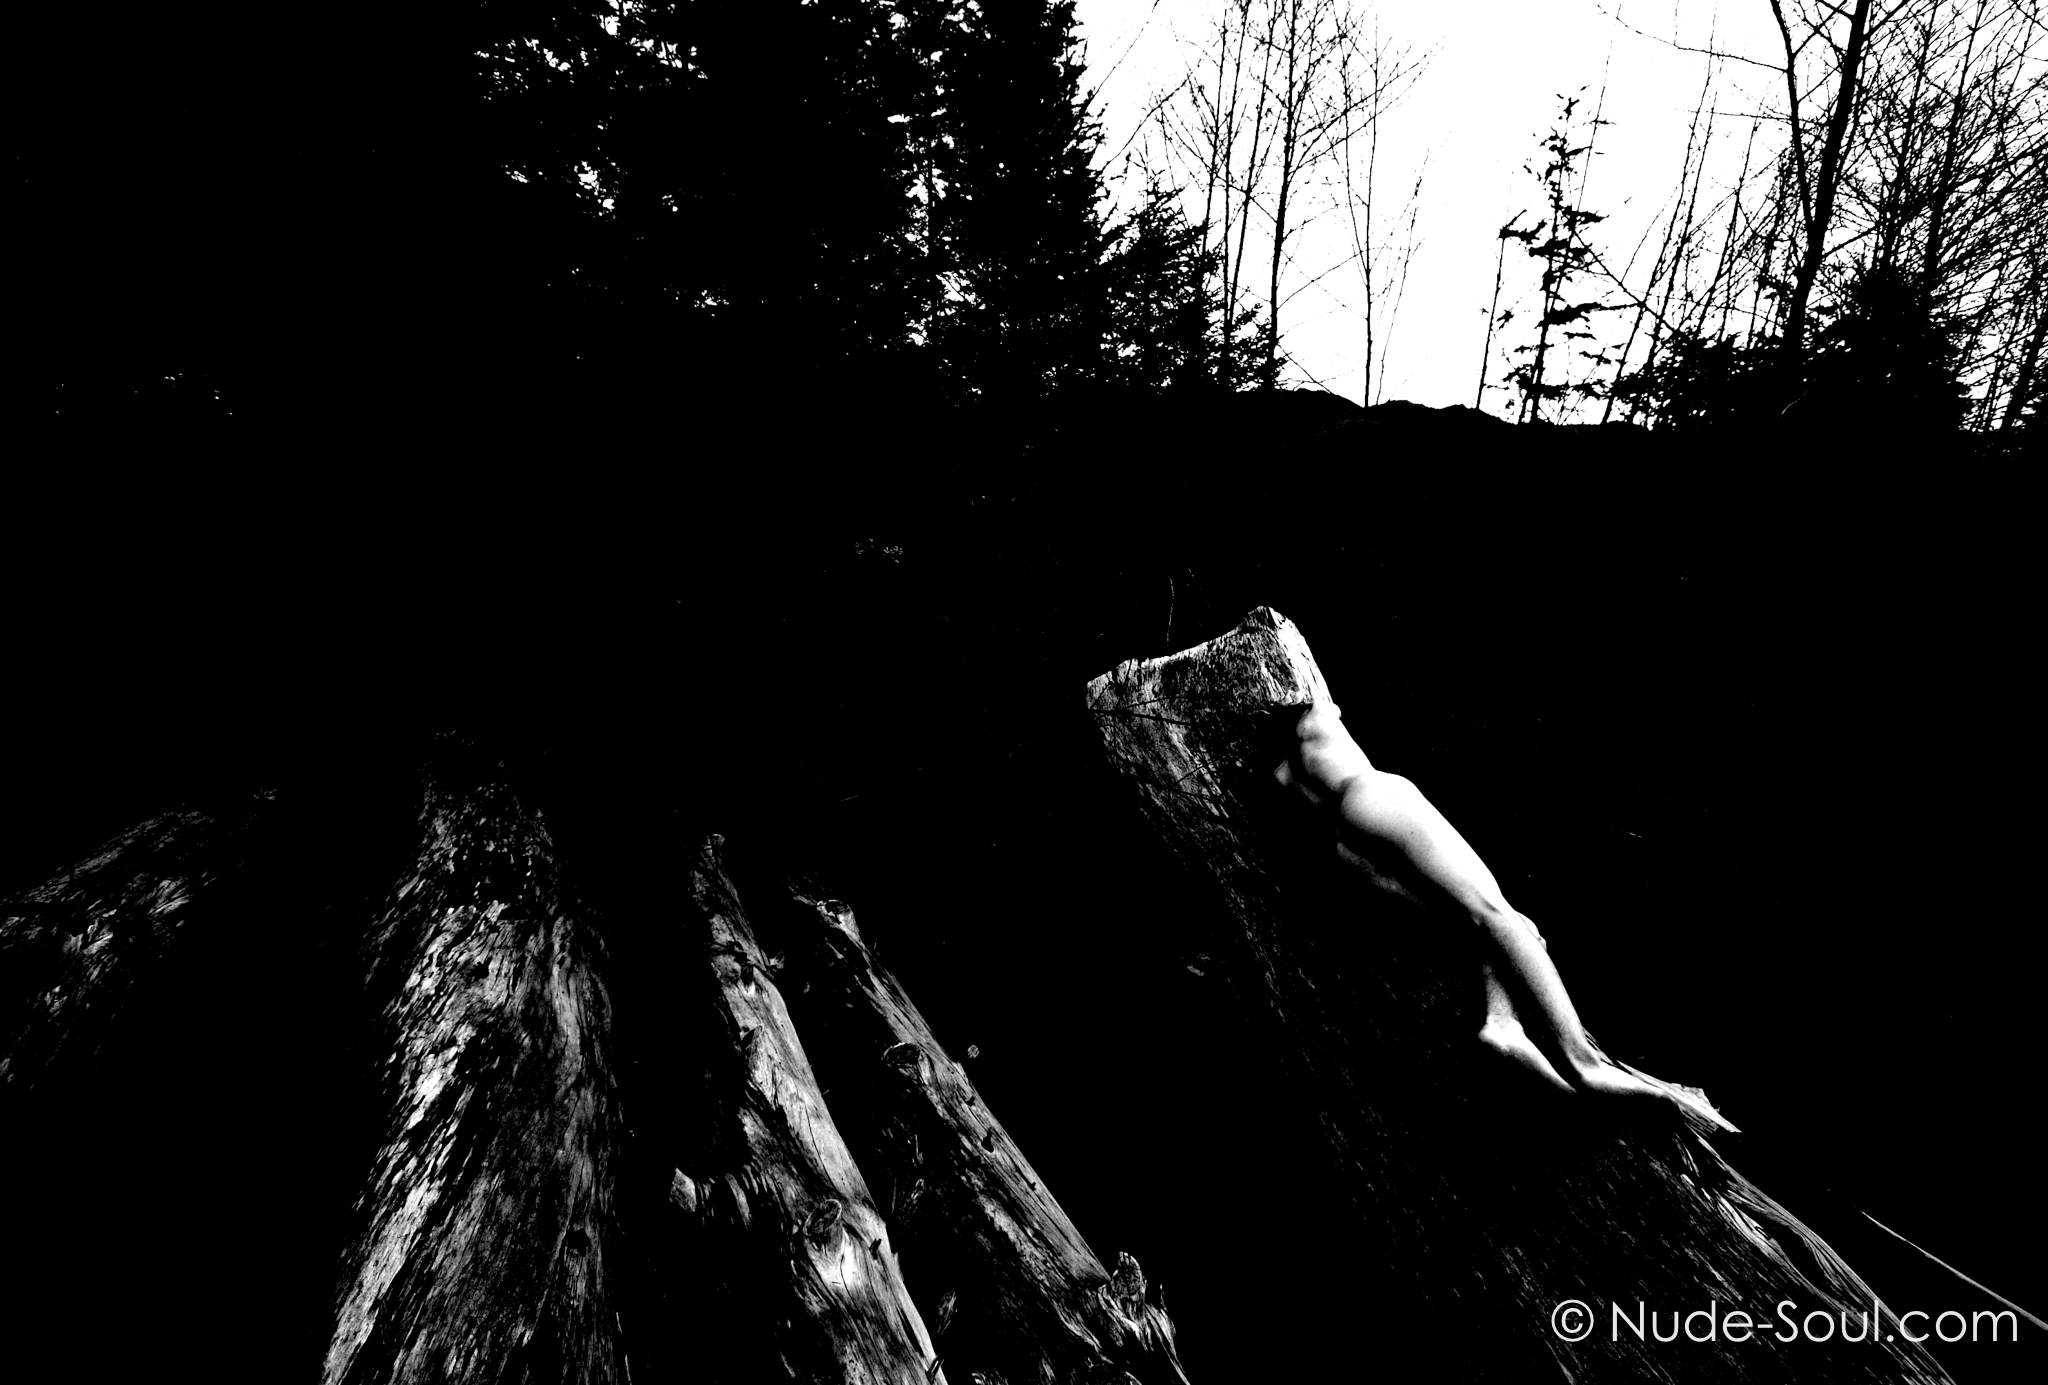 Desolation and the Human Form 11 - Darkness of Humanity in Black and White - Nude Male Photography Art